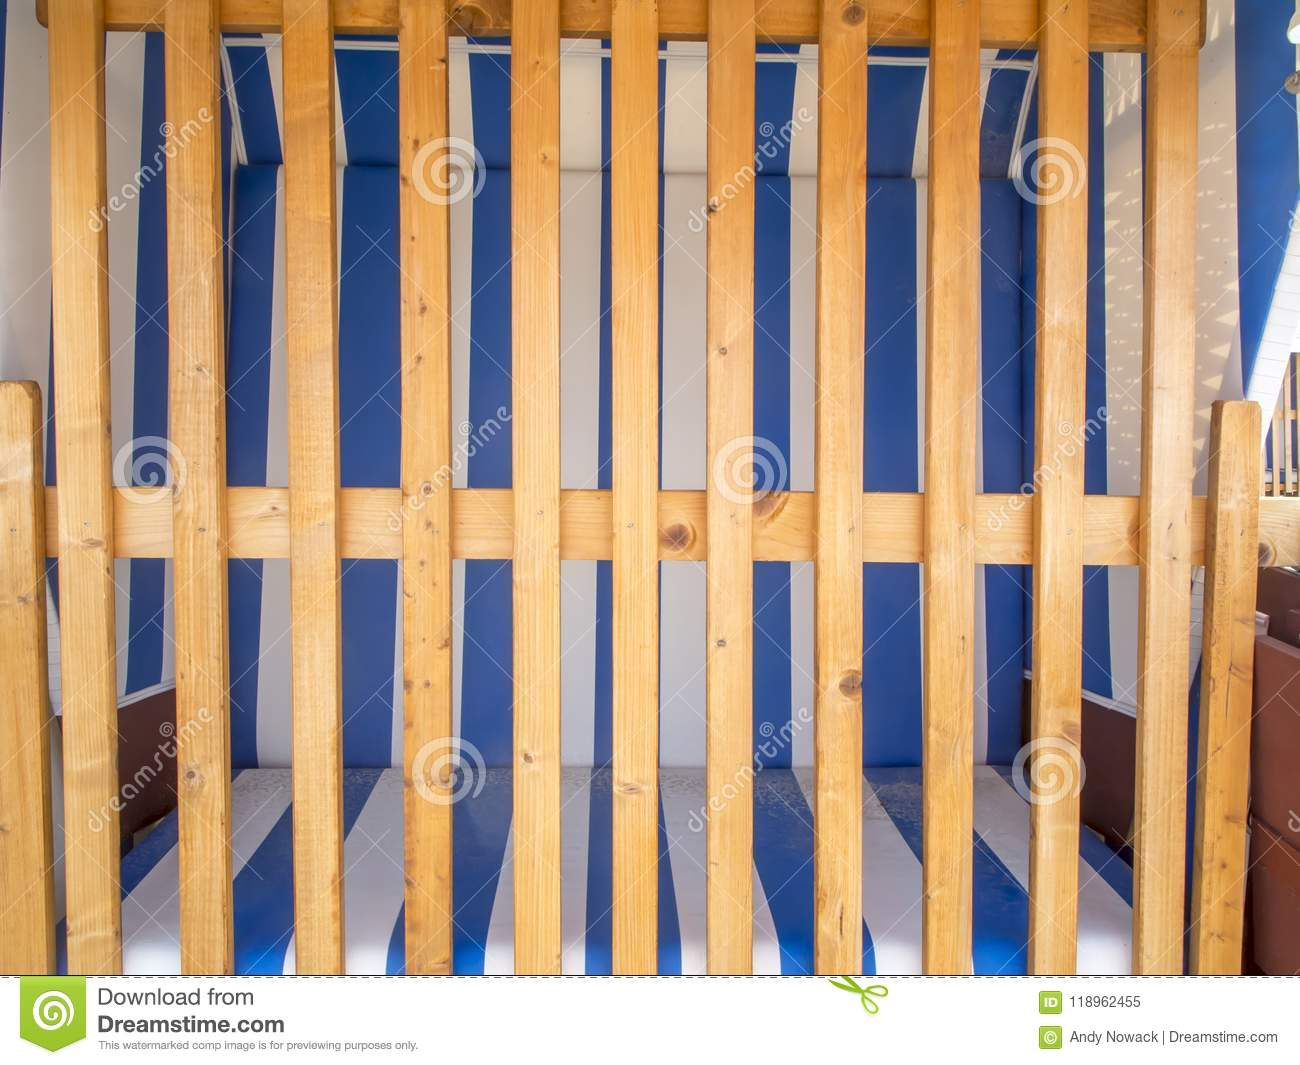 wooden frame beach chairs meco folding obstructed chair with barricade stock image of frontal view on a locked